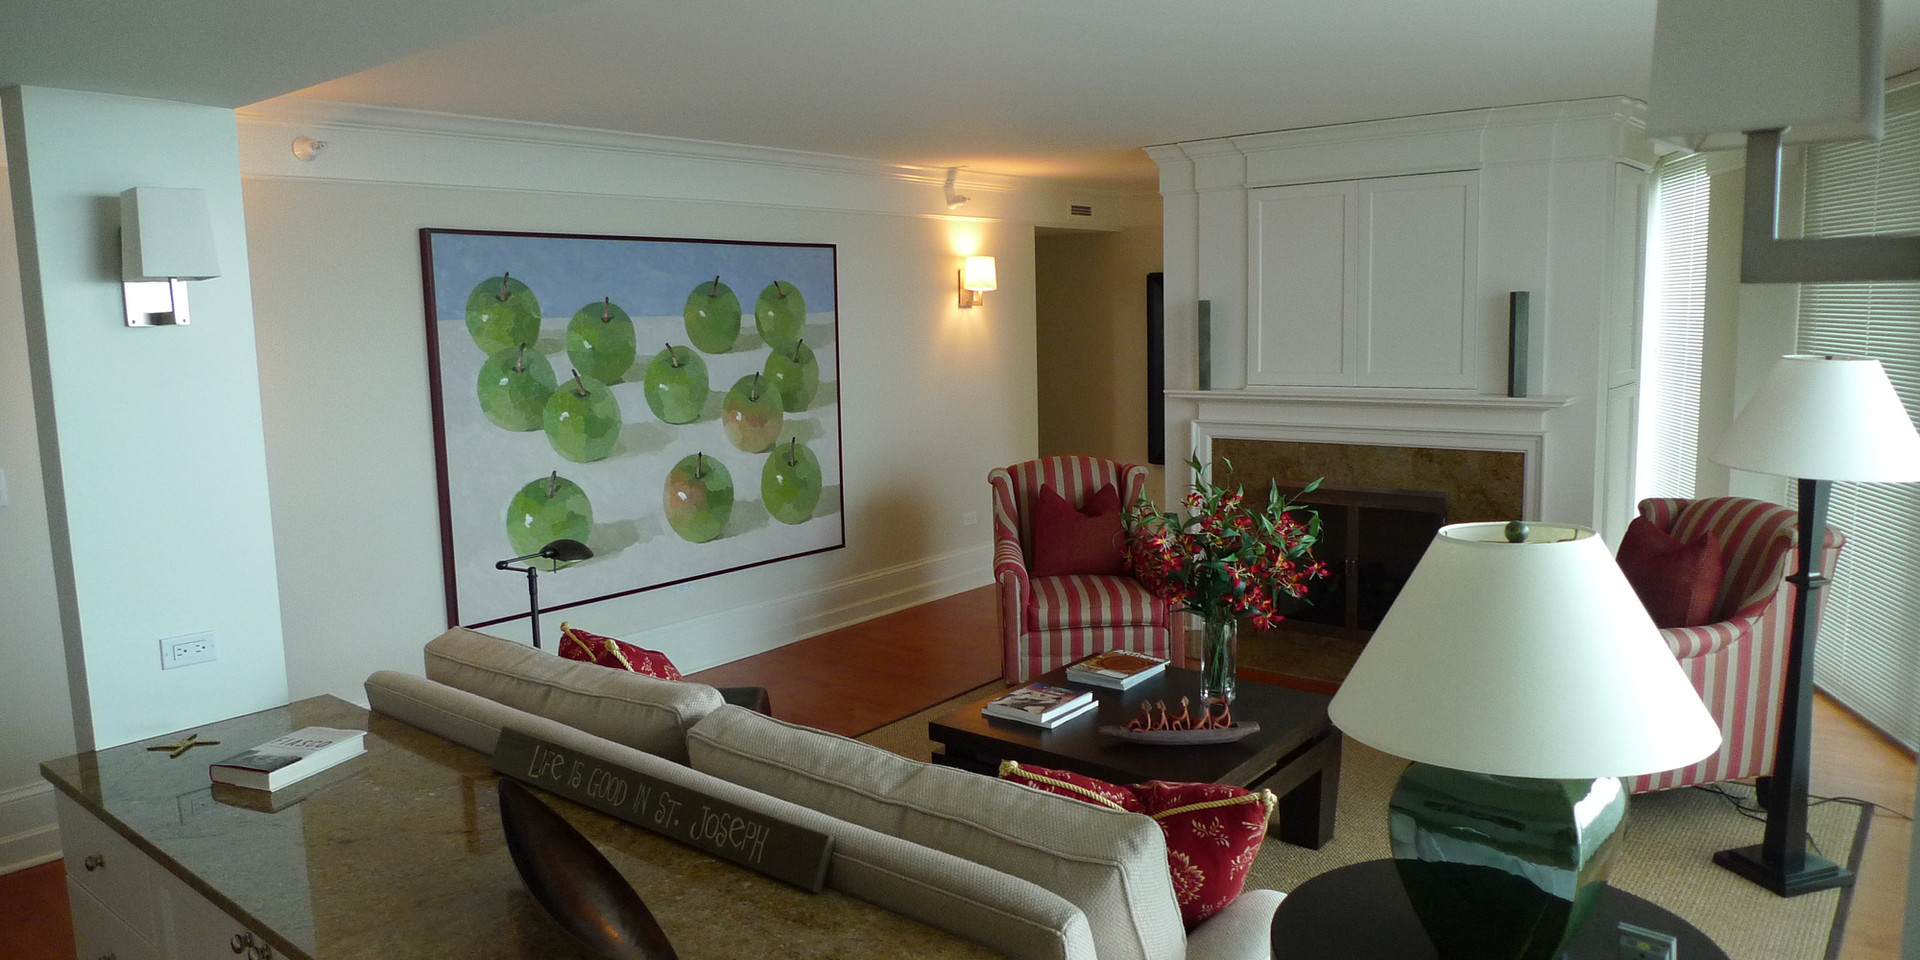 A 60x84 painting in a living room